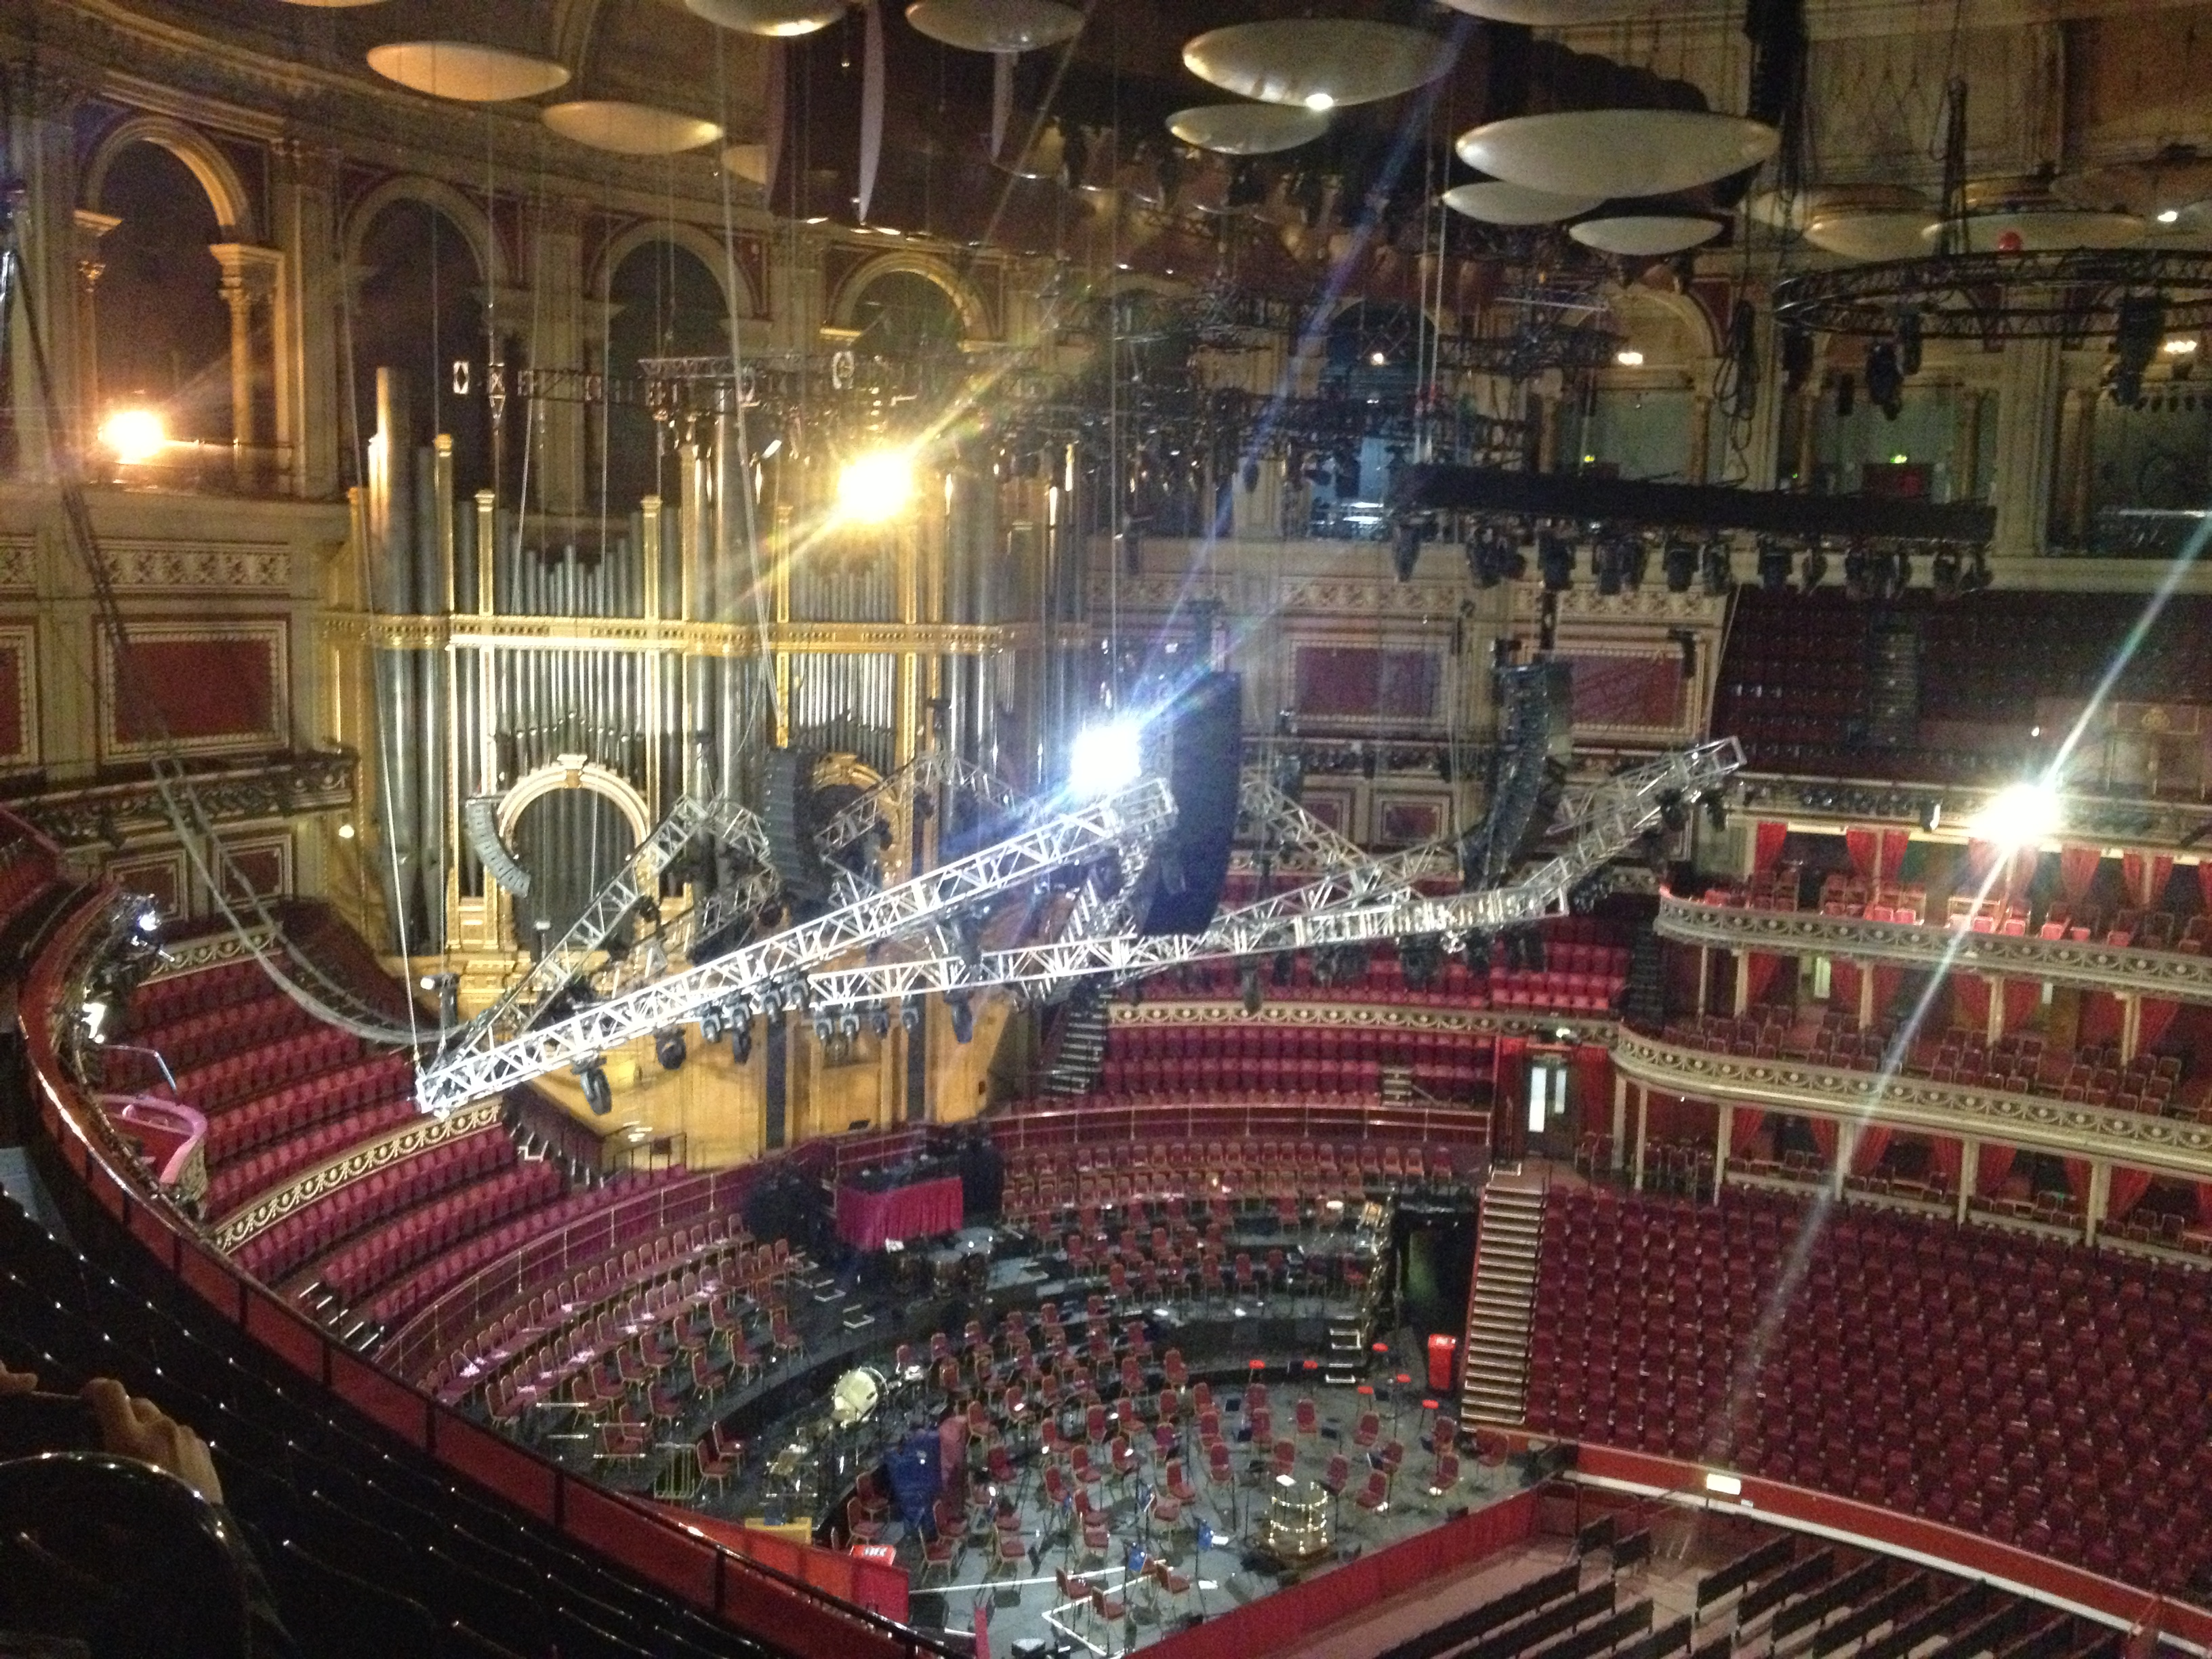 Visiter londres le royal albert hall et kensington gardens for Door 12 royal albert hall